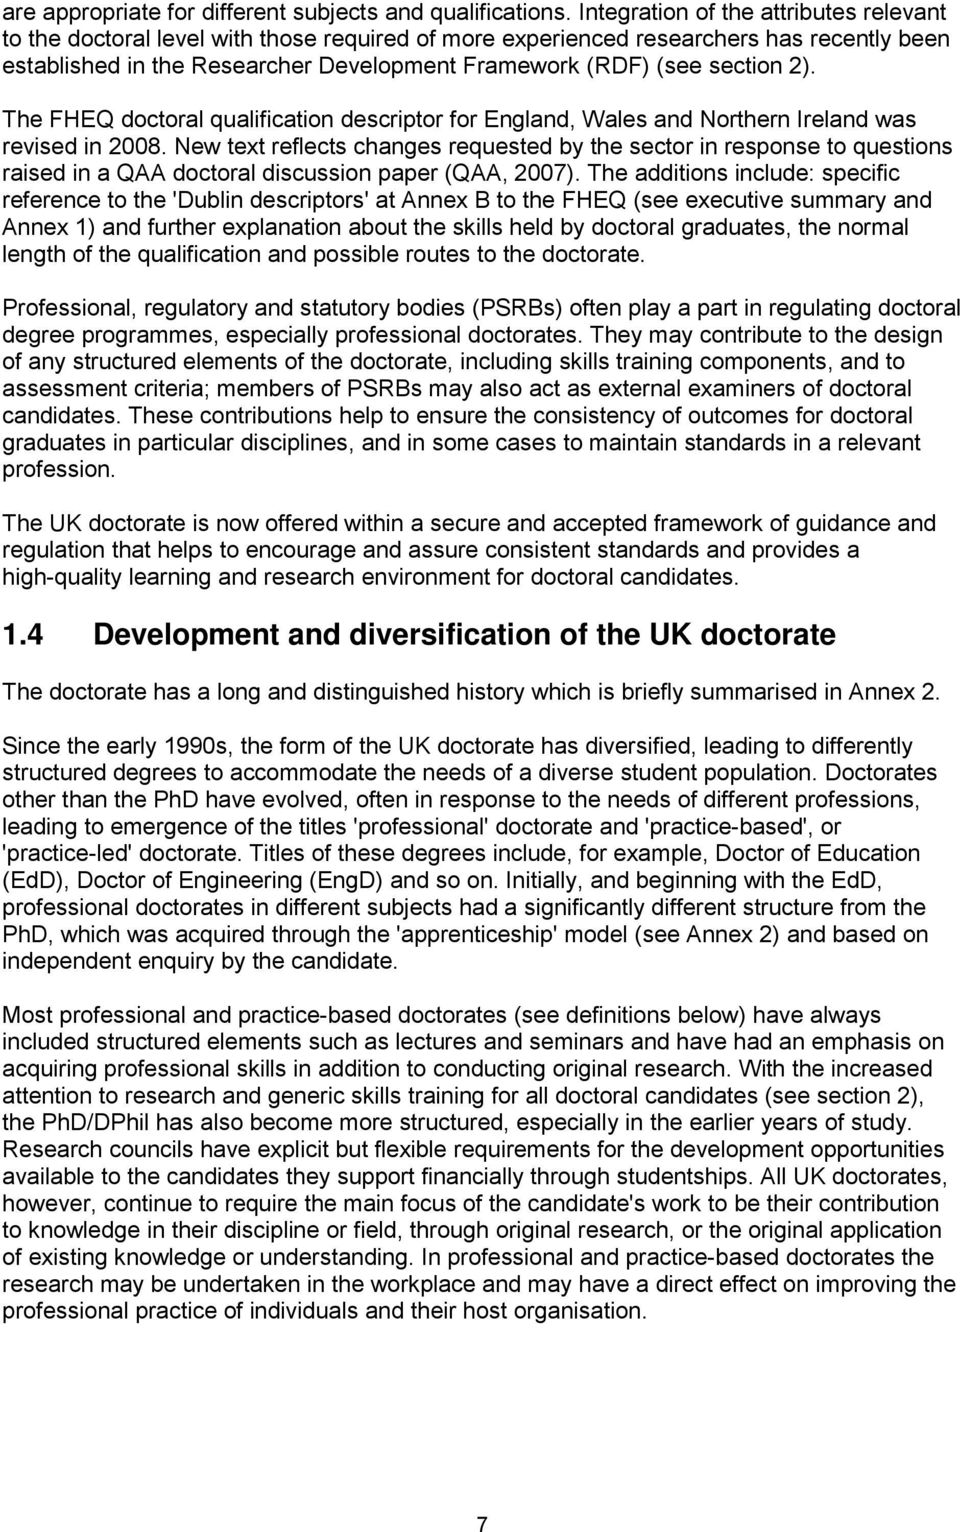 section 2). The FHEQ doctoral qualification descriptor for England, Wales and Northern Ireland was revised in 2008.